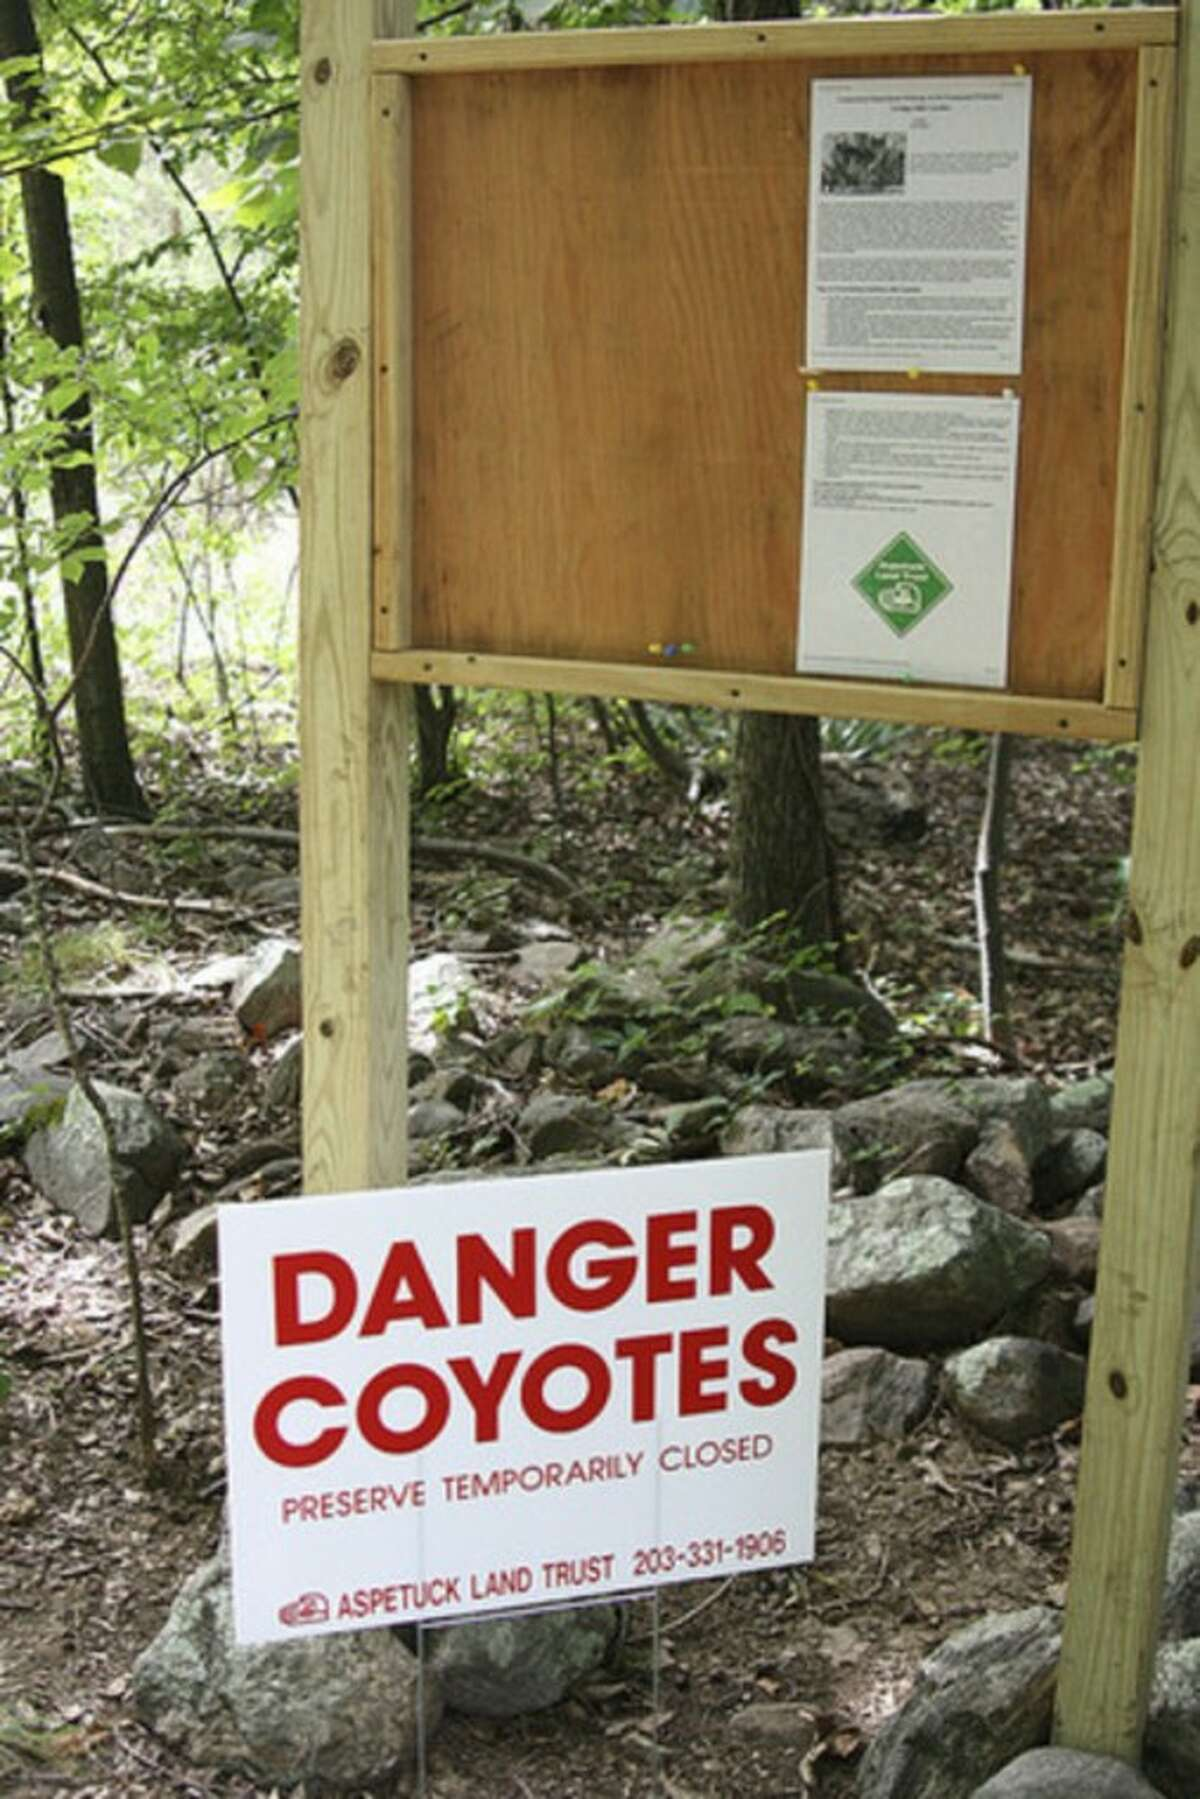 A sign warns of coyotes at the Taylor Woods/Tall Pines preserve in Weston. Photo by Chris Bosak